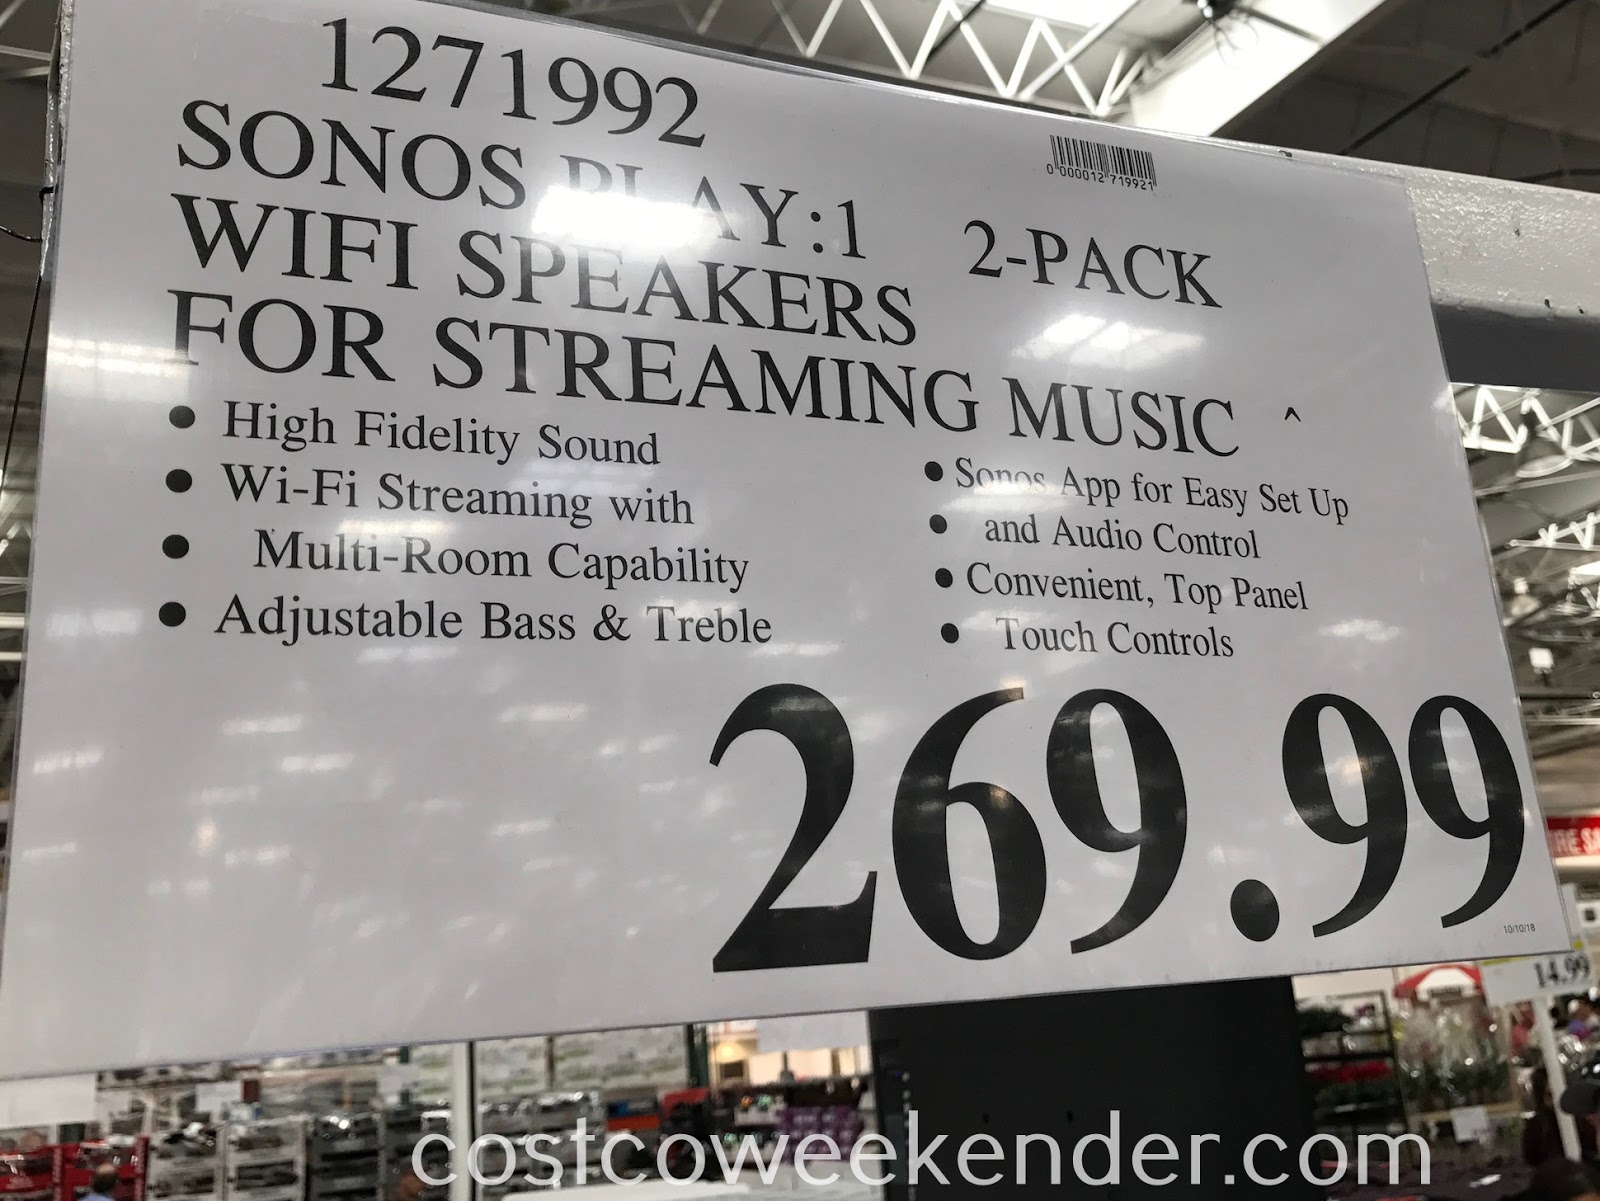 Deal for a set of 2 Sonos Play:1 Wifi Speakers at Costco